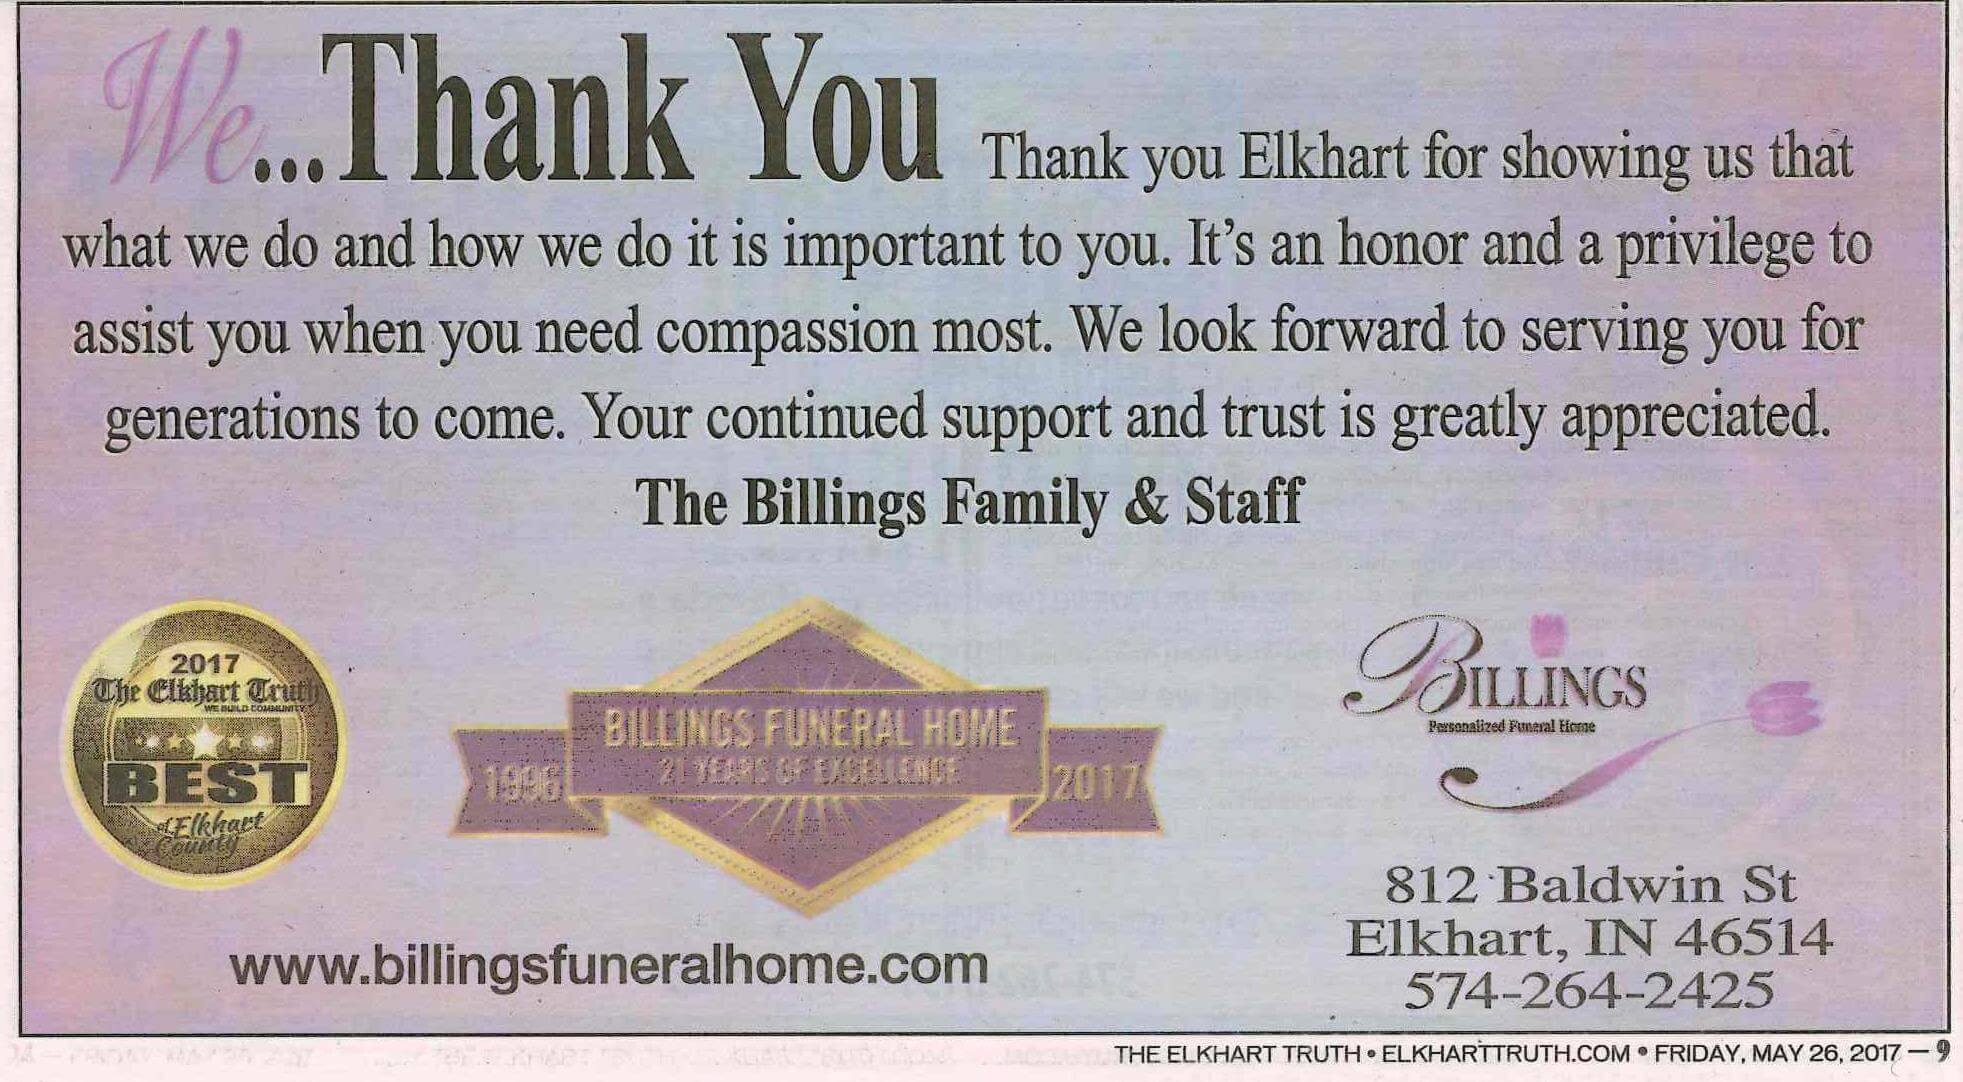 Billings Funeral Home Baldwin Street Elkhart In